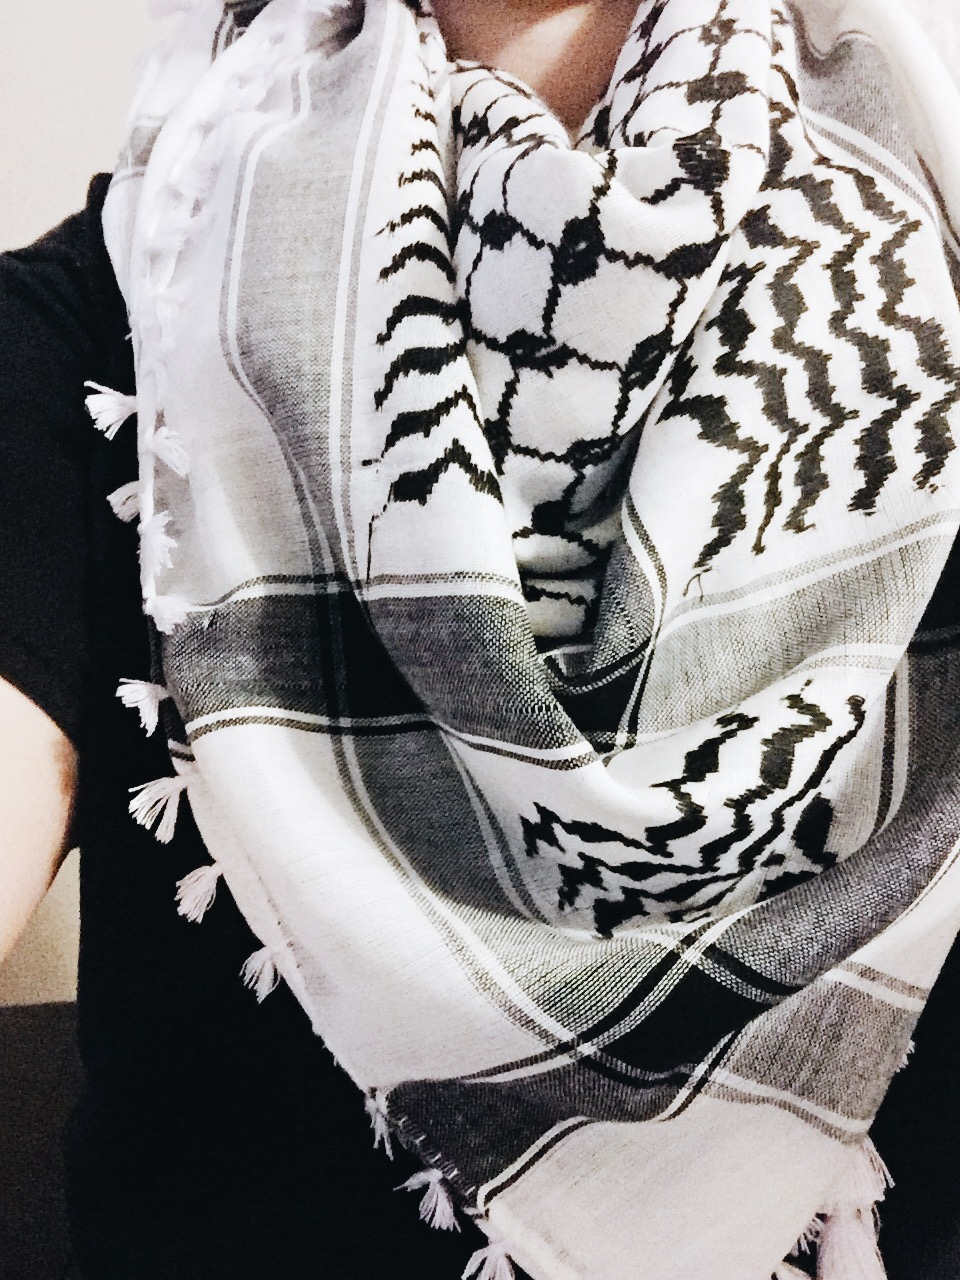 Day 6 Giveaway: Scarf from Israel